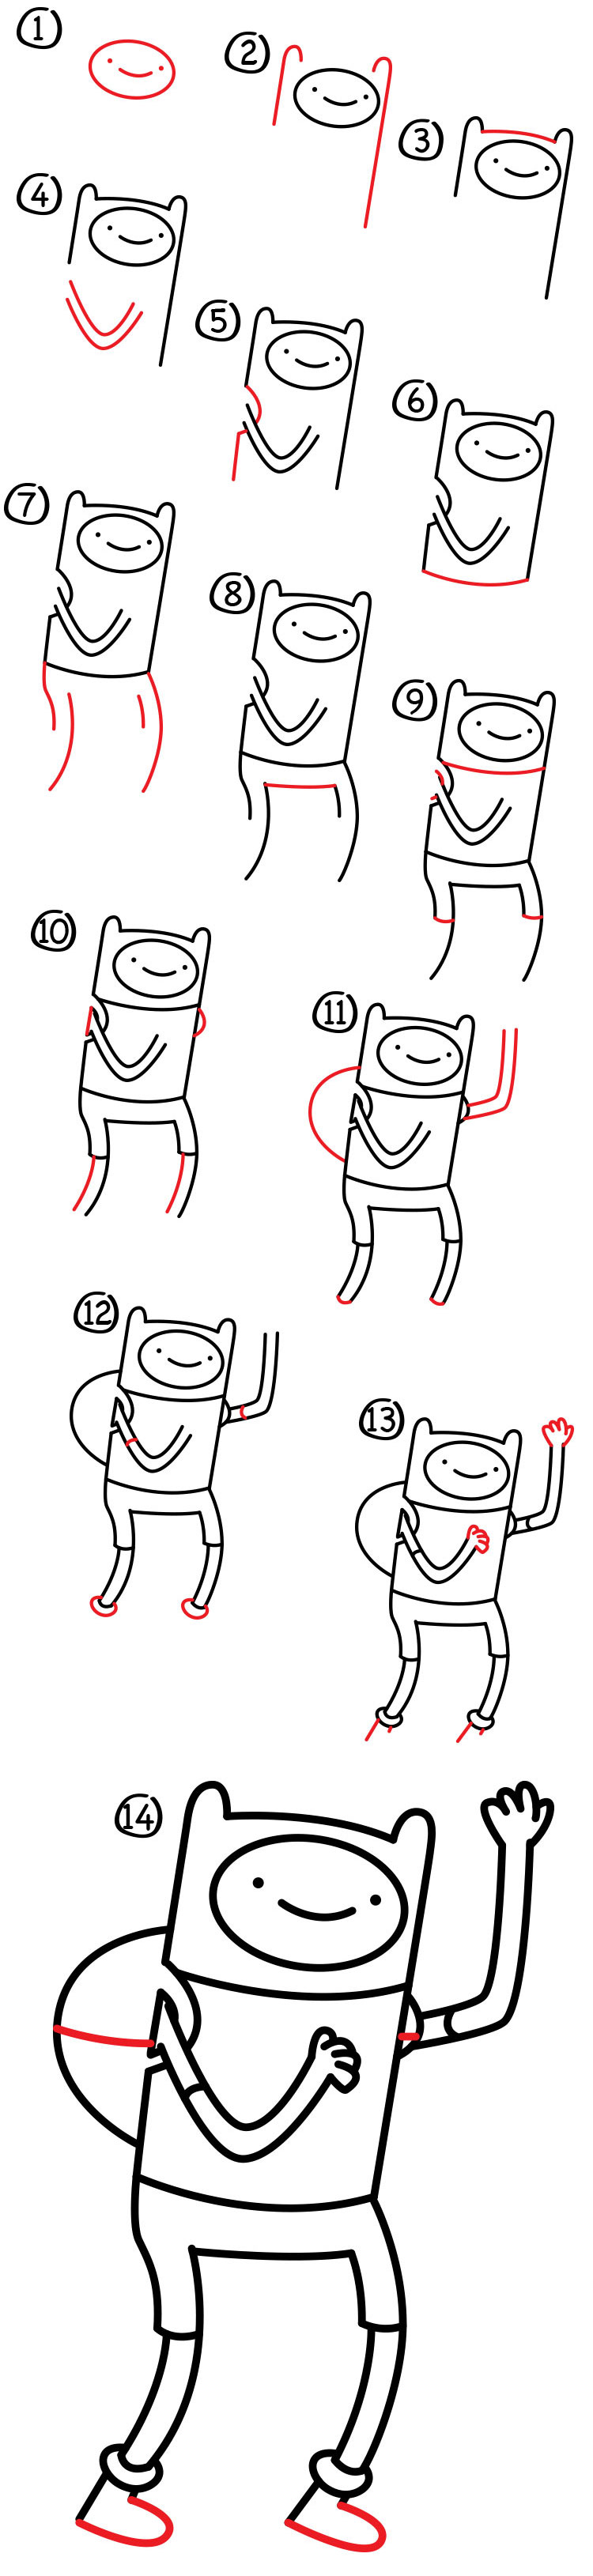 How To Draw Adventure Time Finn